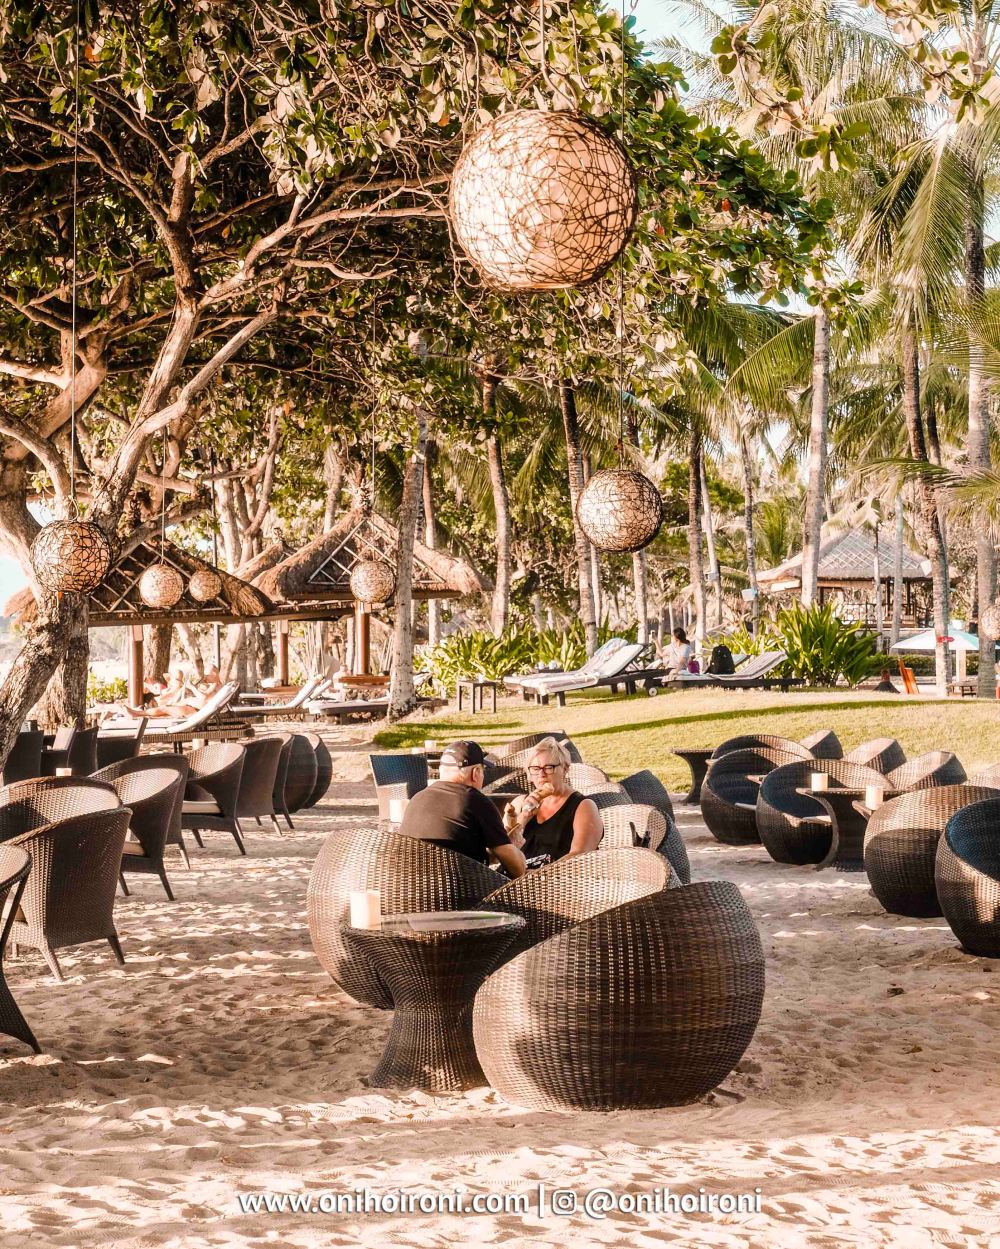 13 Sunset beach bar and grill intercontinental bali resort oni hoironi restaurant di jimbaran copy